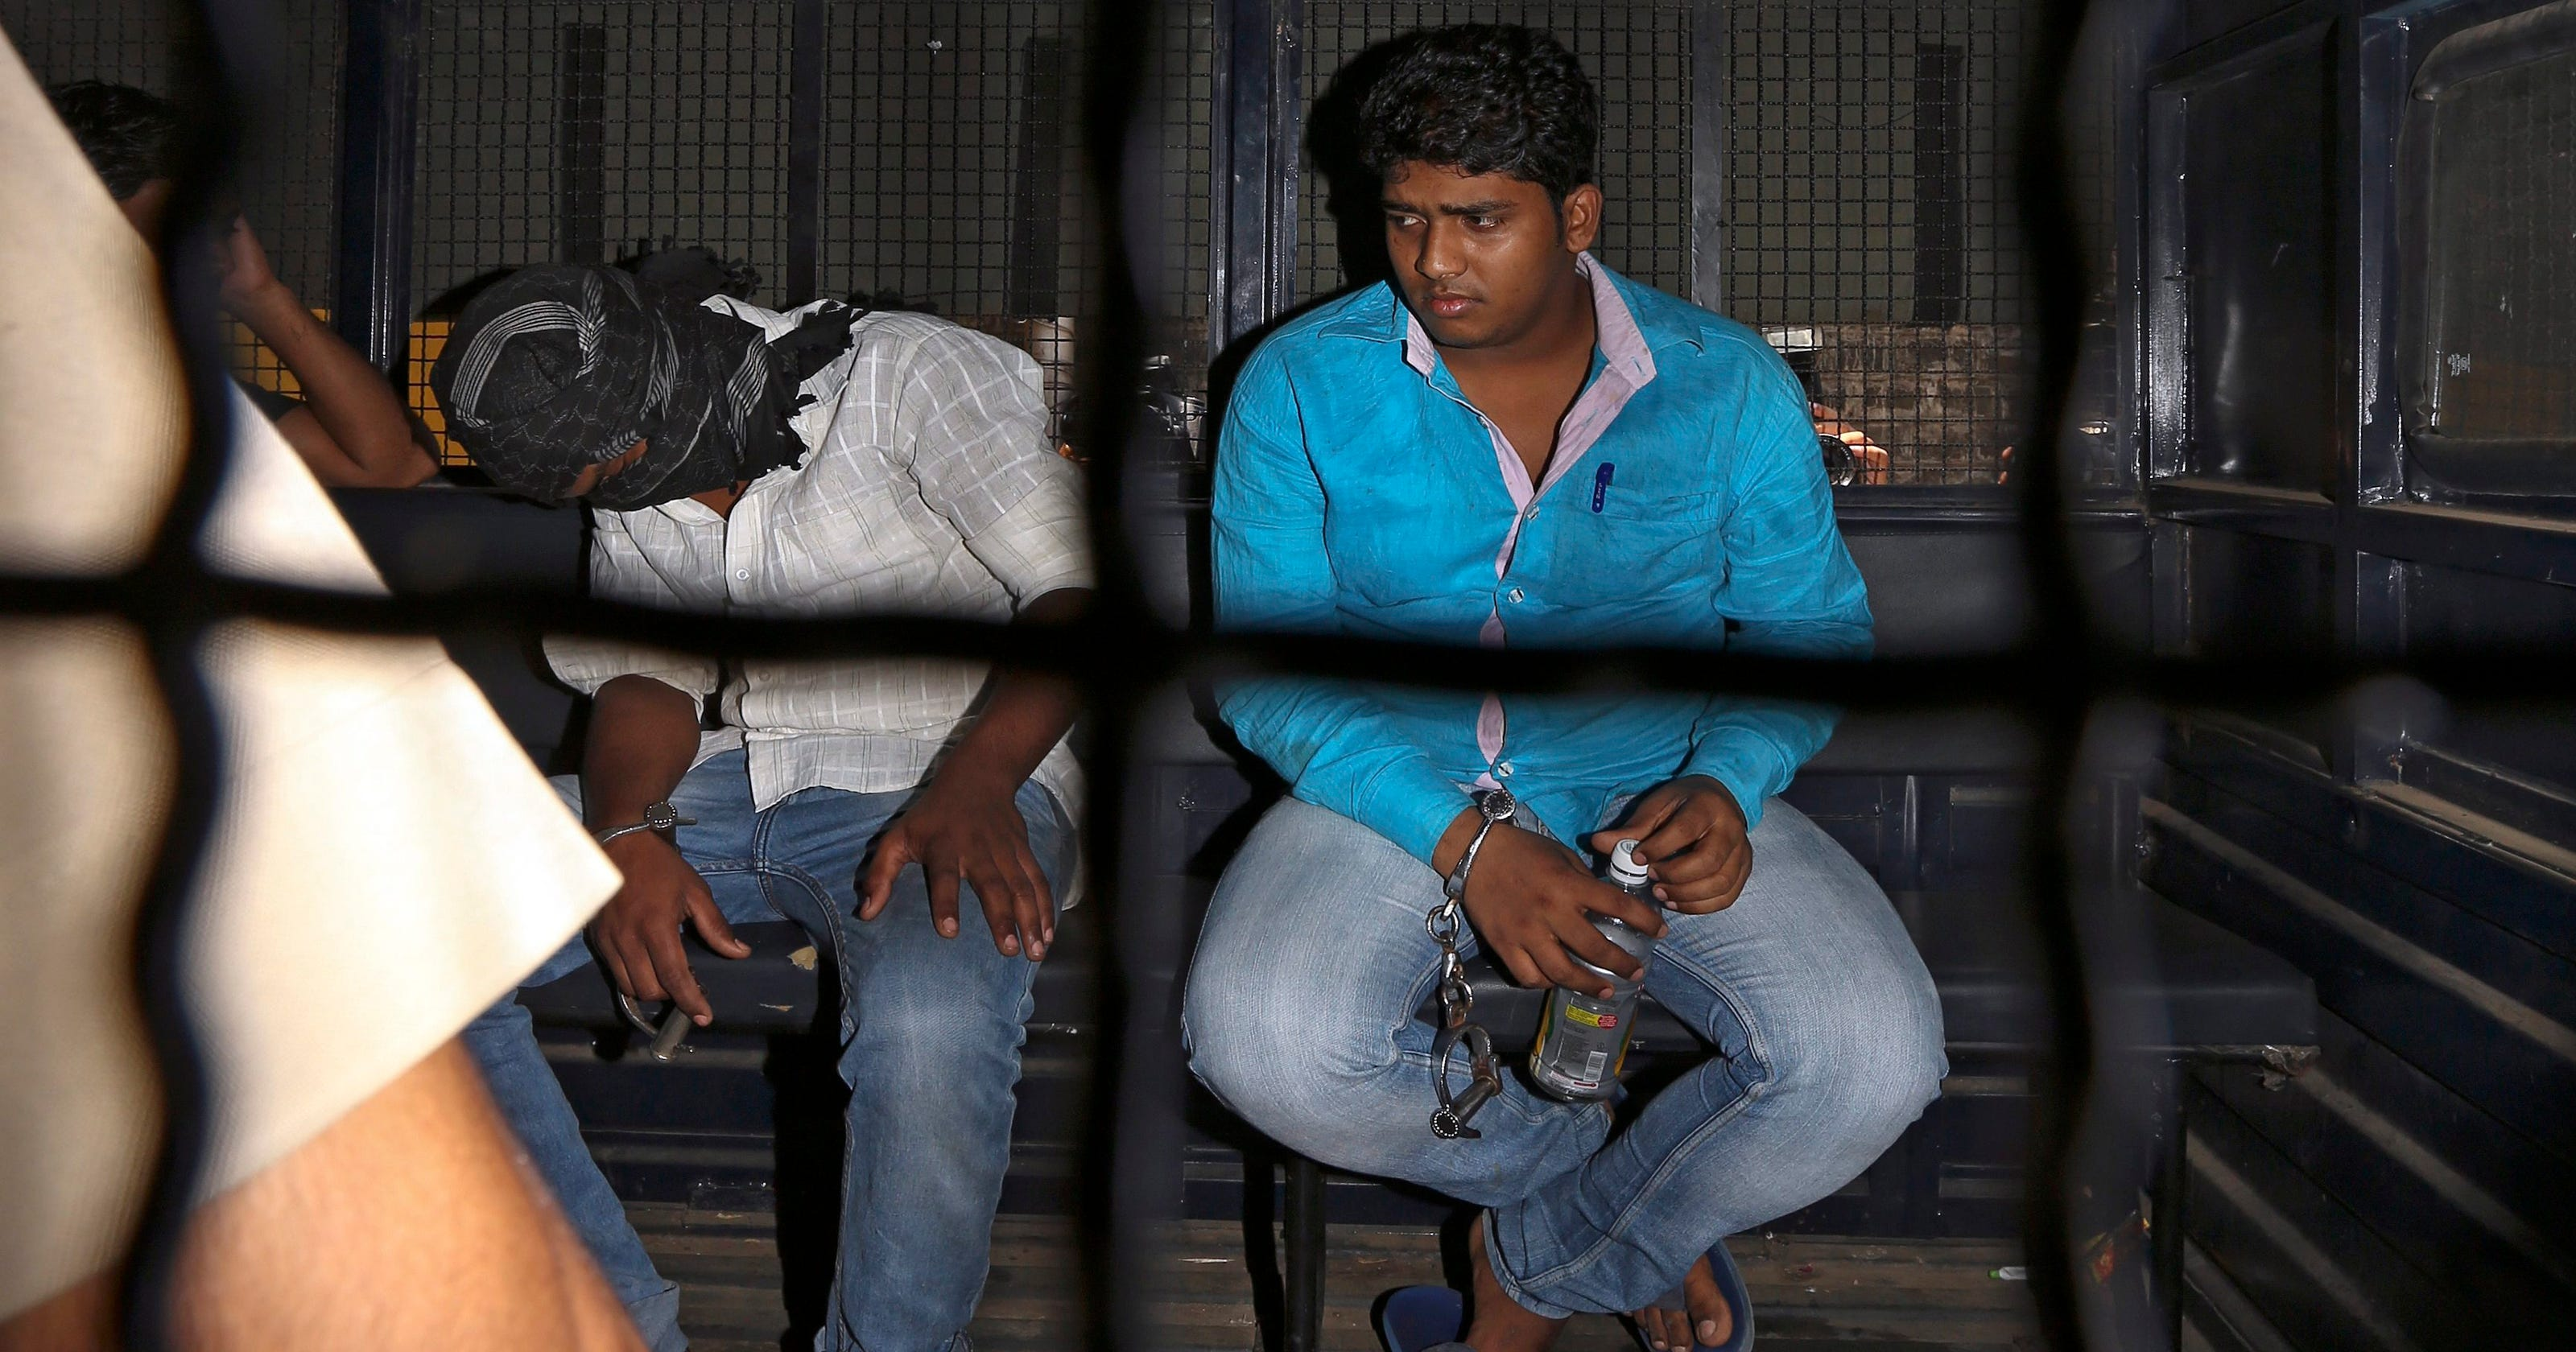 3 sentenced to death for journalist's gang rape in India